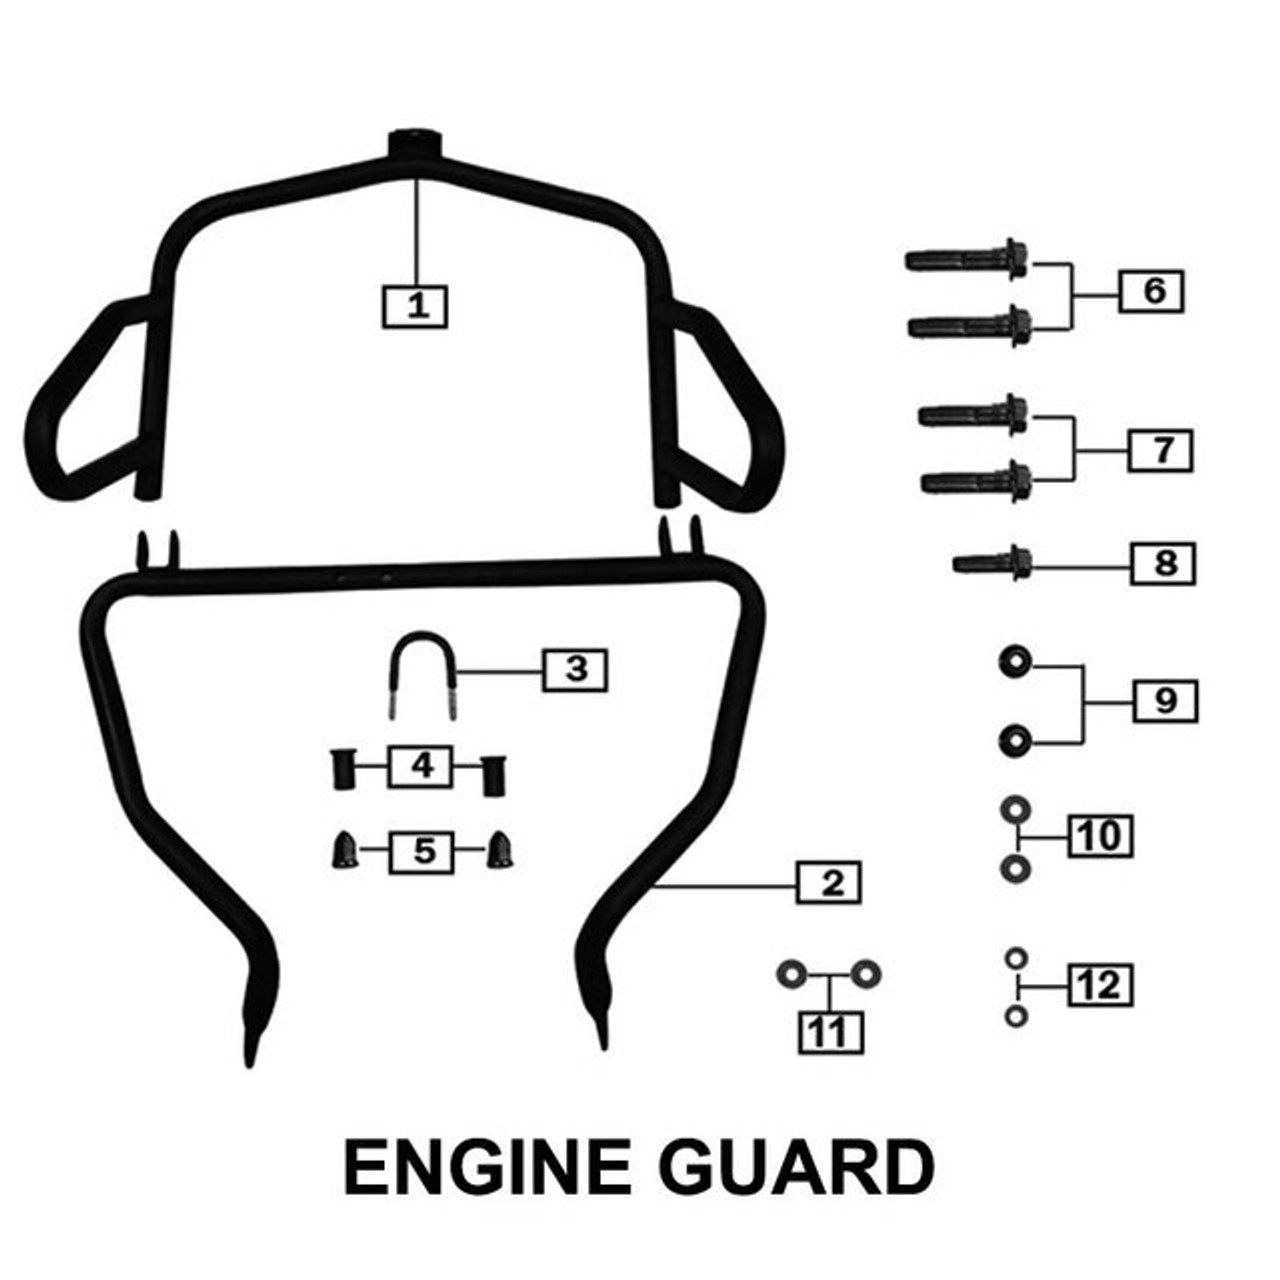 BODY ENGINE GUARD